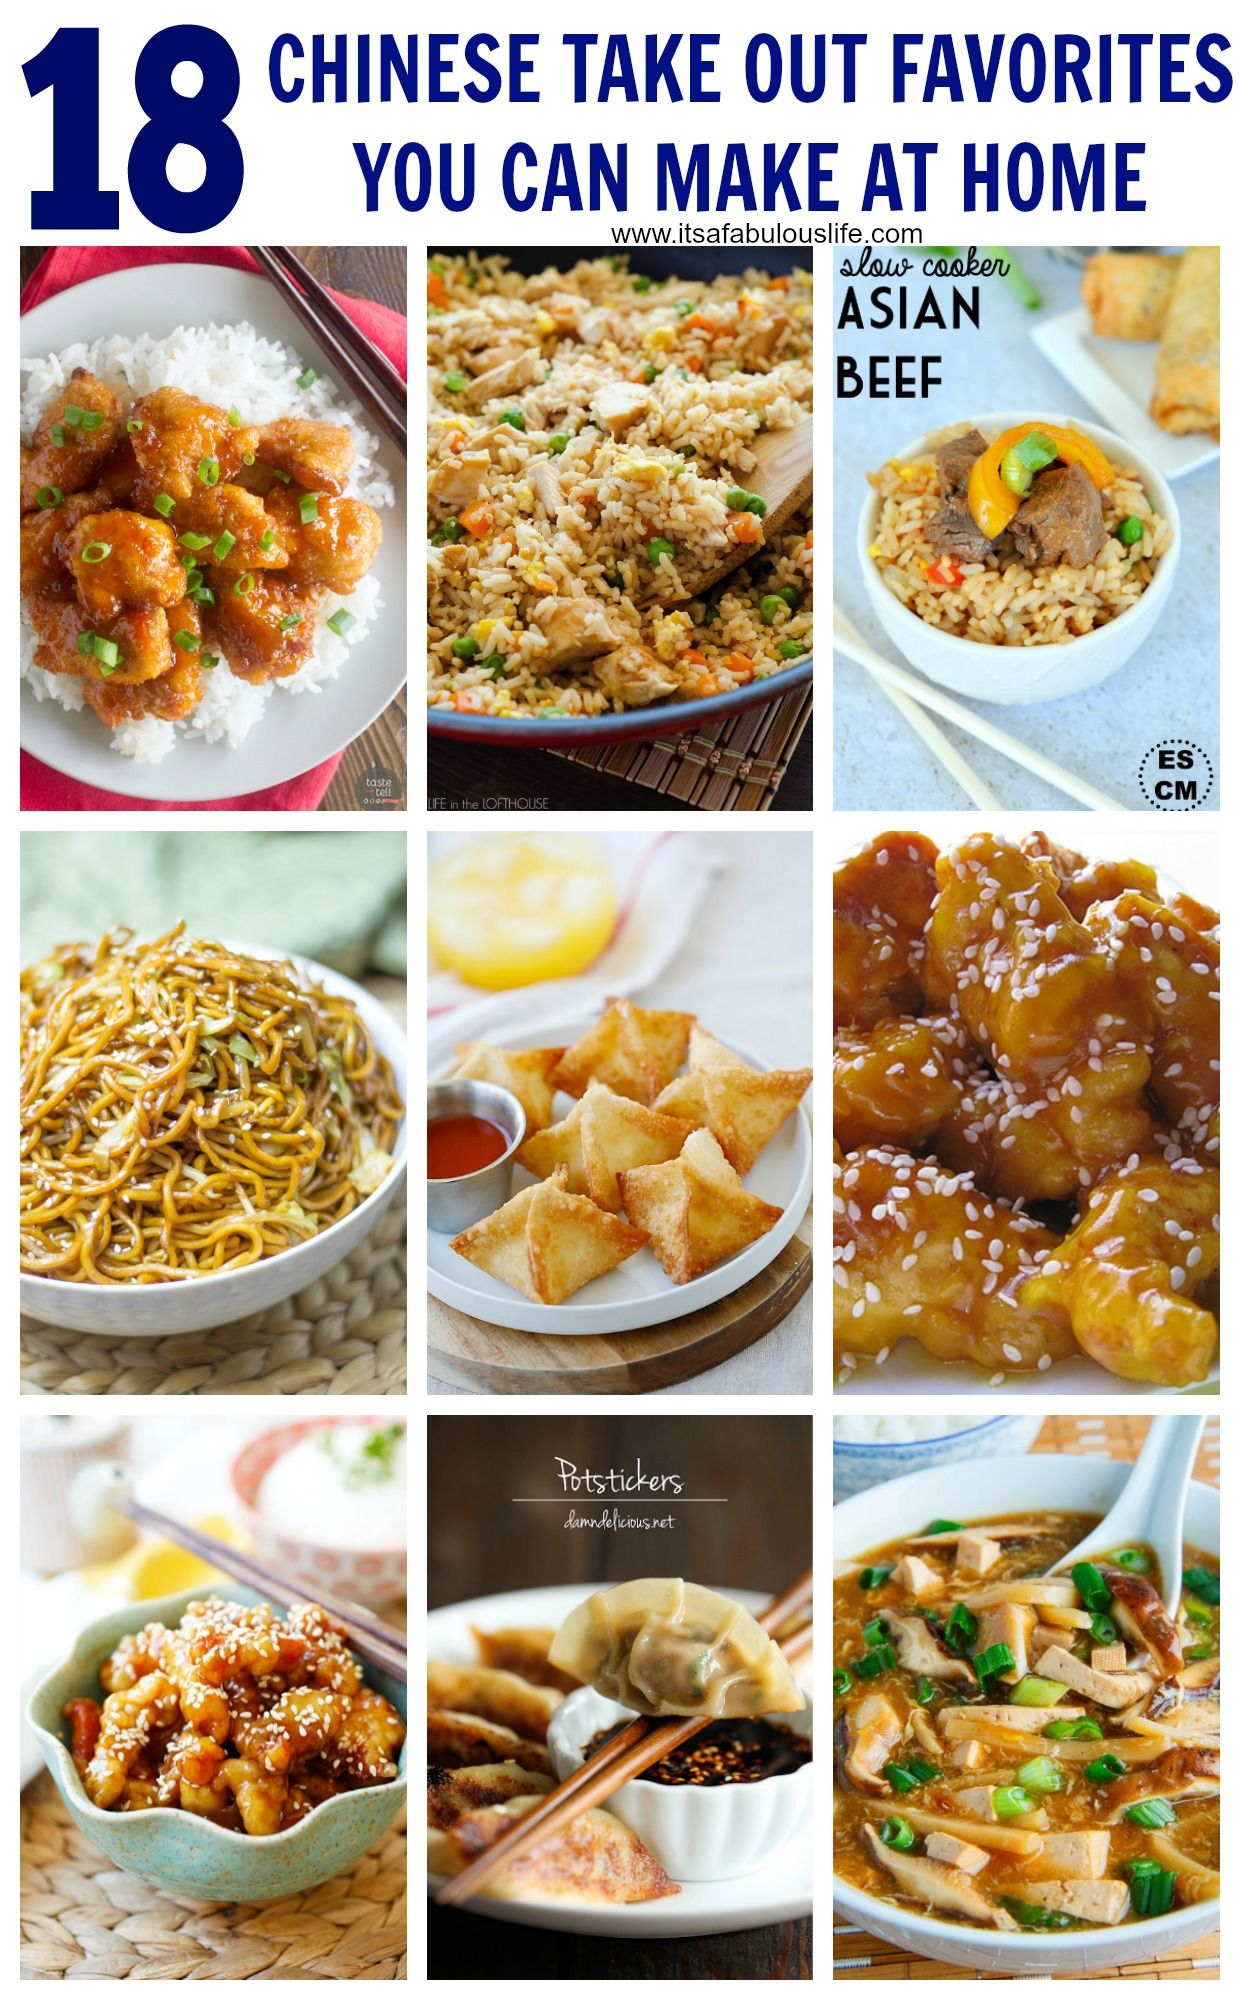 18 chinese recipes take out favorites you can make at home 18 chinese recipes take out favorites you can make at home chinese food recipes forumfinder Gallery